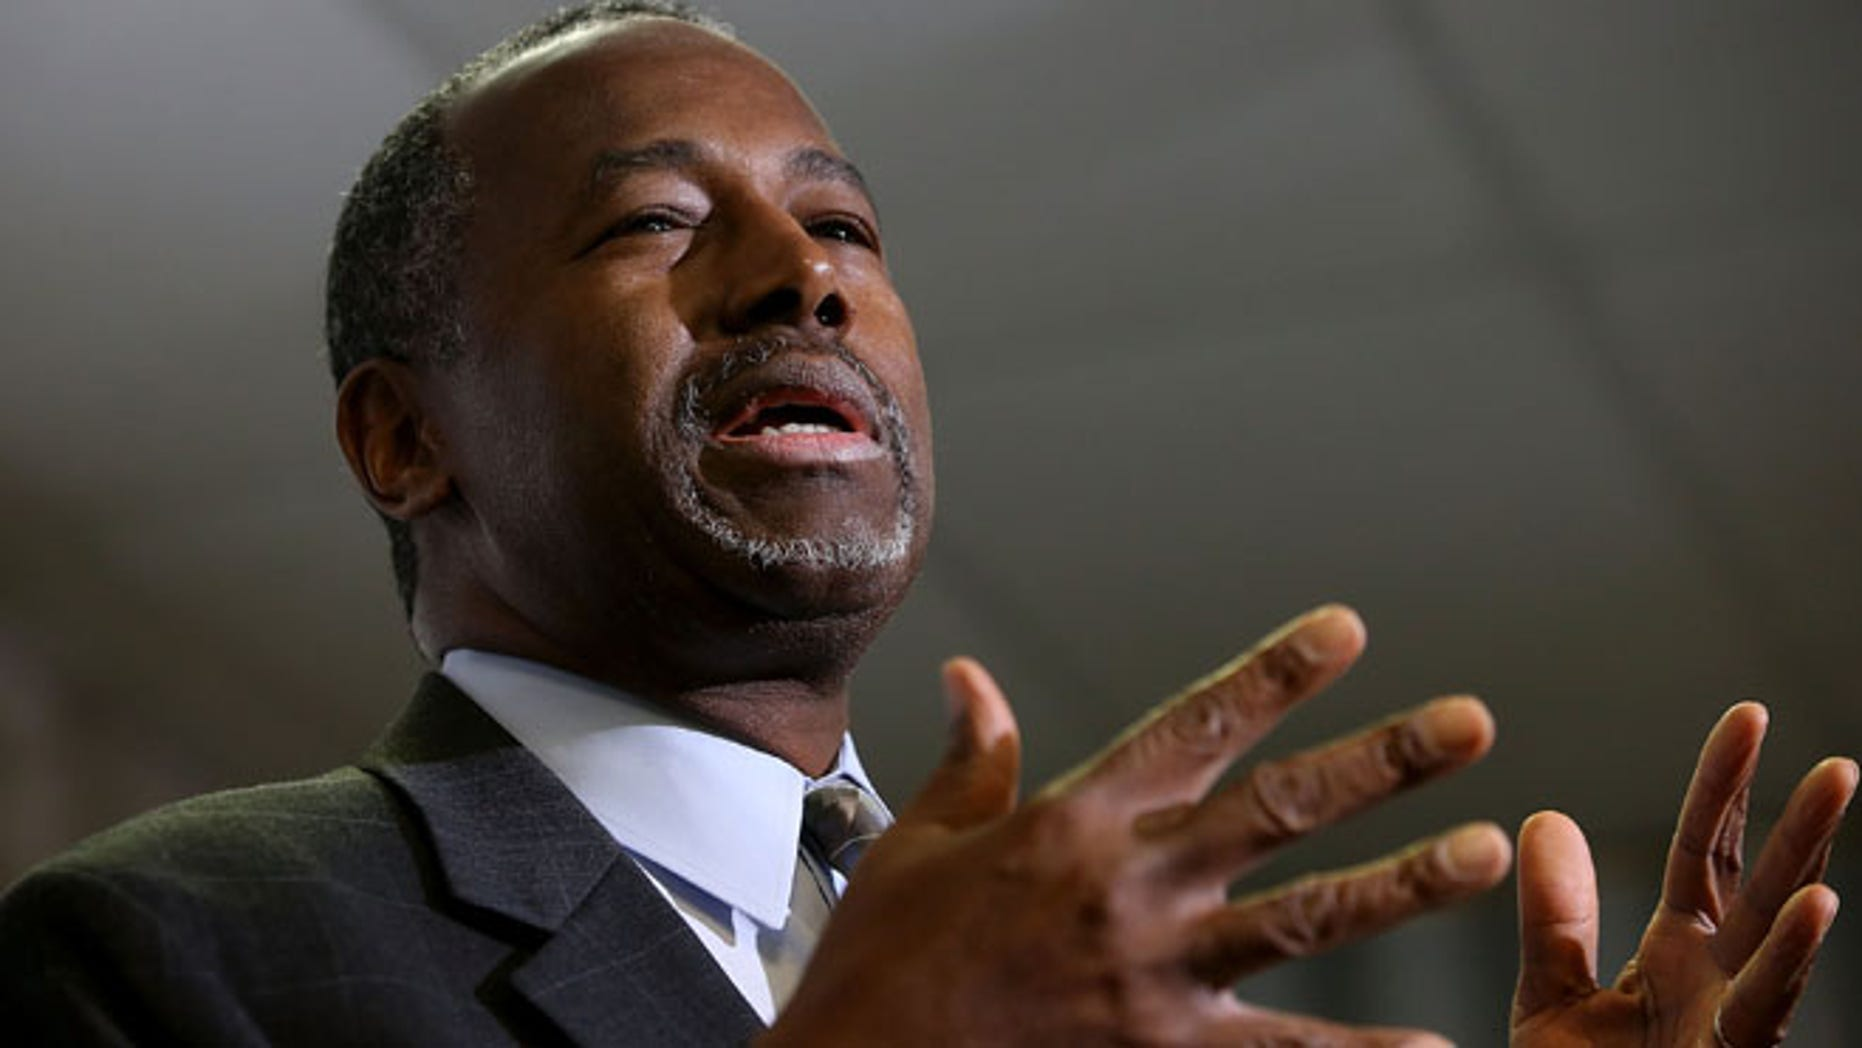 Republican presidential candidate Ben Carson speaks during a news conference before a campaign event at Colorado Christian University on October 29, 2015 in Lakewood, Colorado. (Photo by Justin Sullivan/Getty Images)